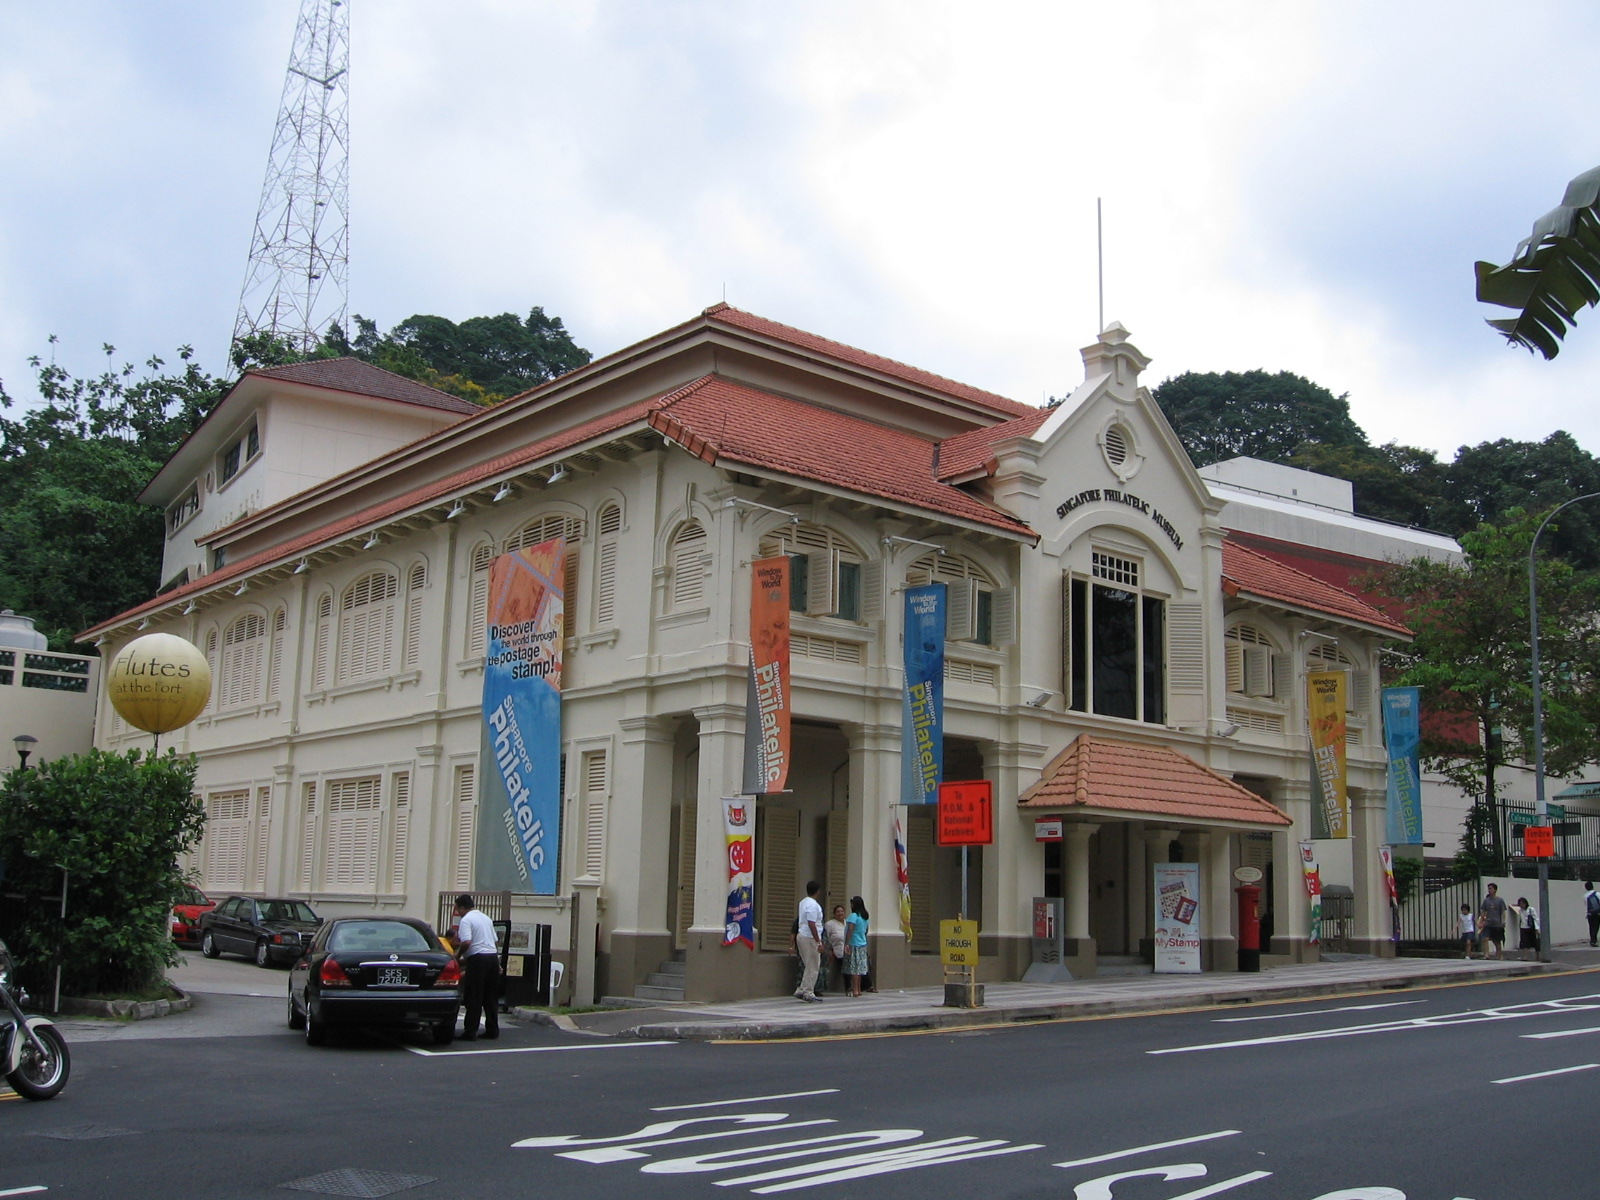 File:Singapore Philatelic Museum, Aug 06.JPG - Wikipedia, the free ...